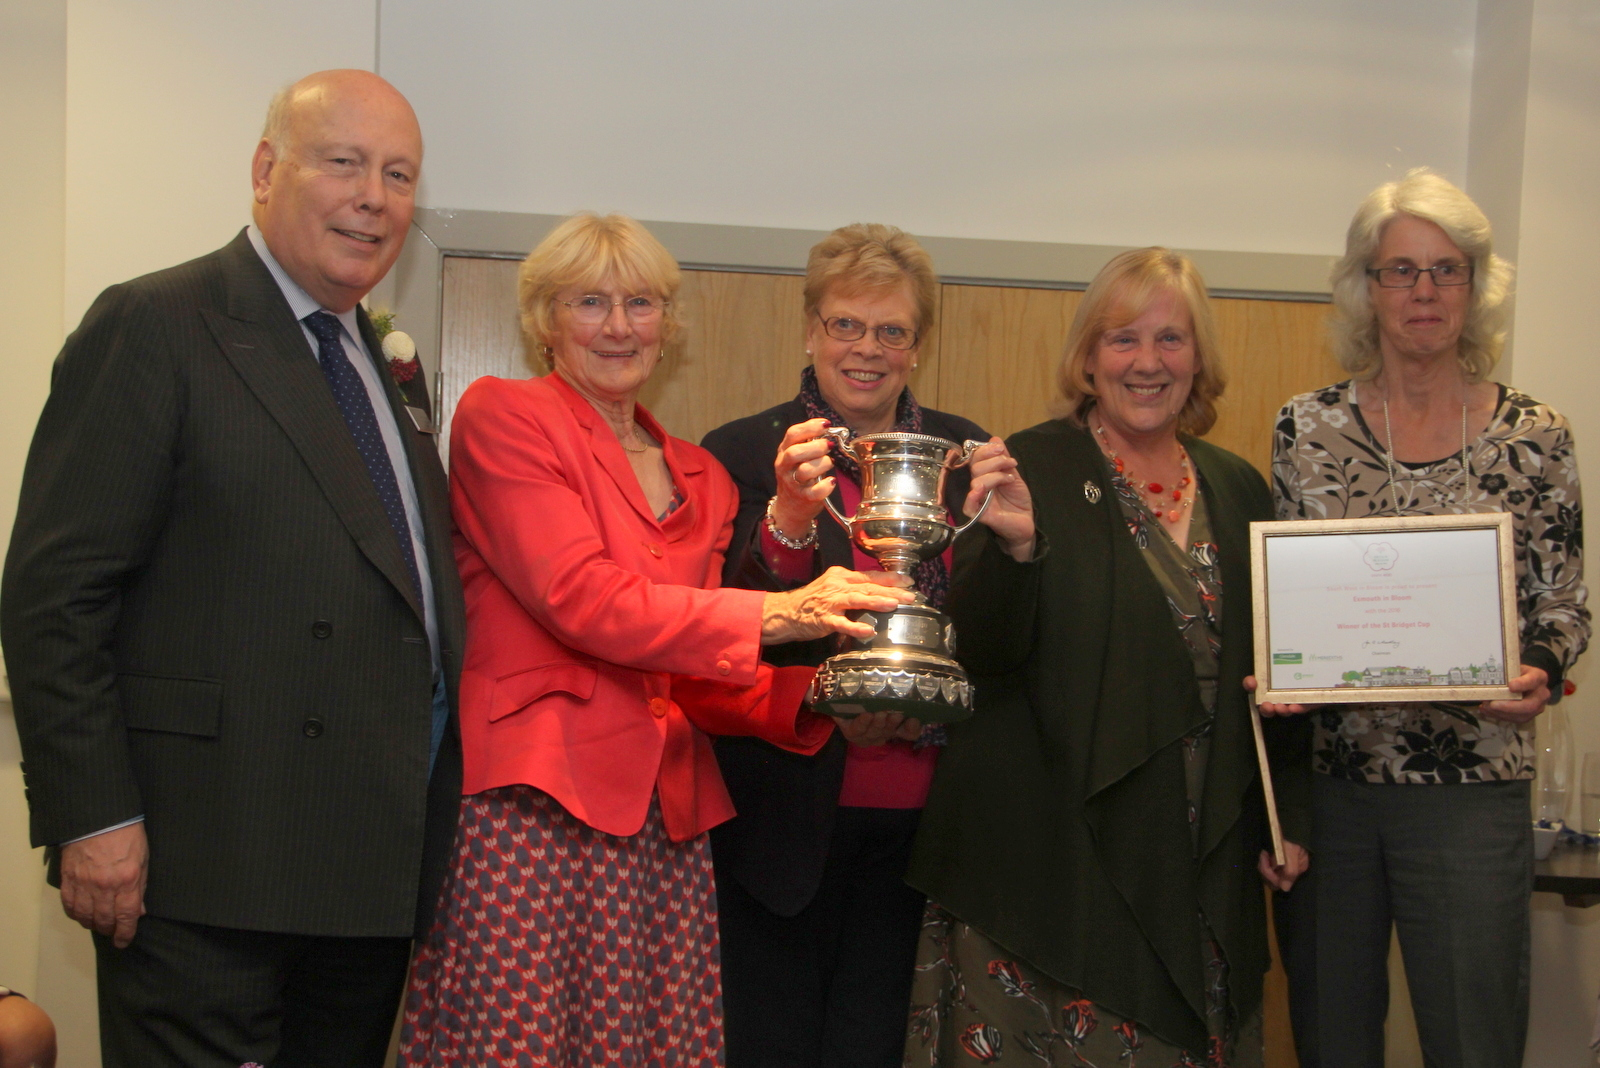 Receiving the Cup from Lord Fellowes